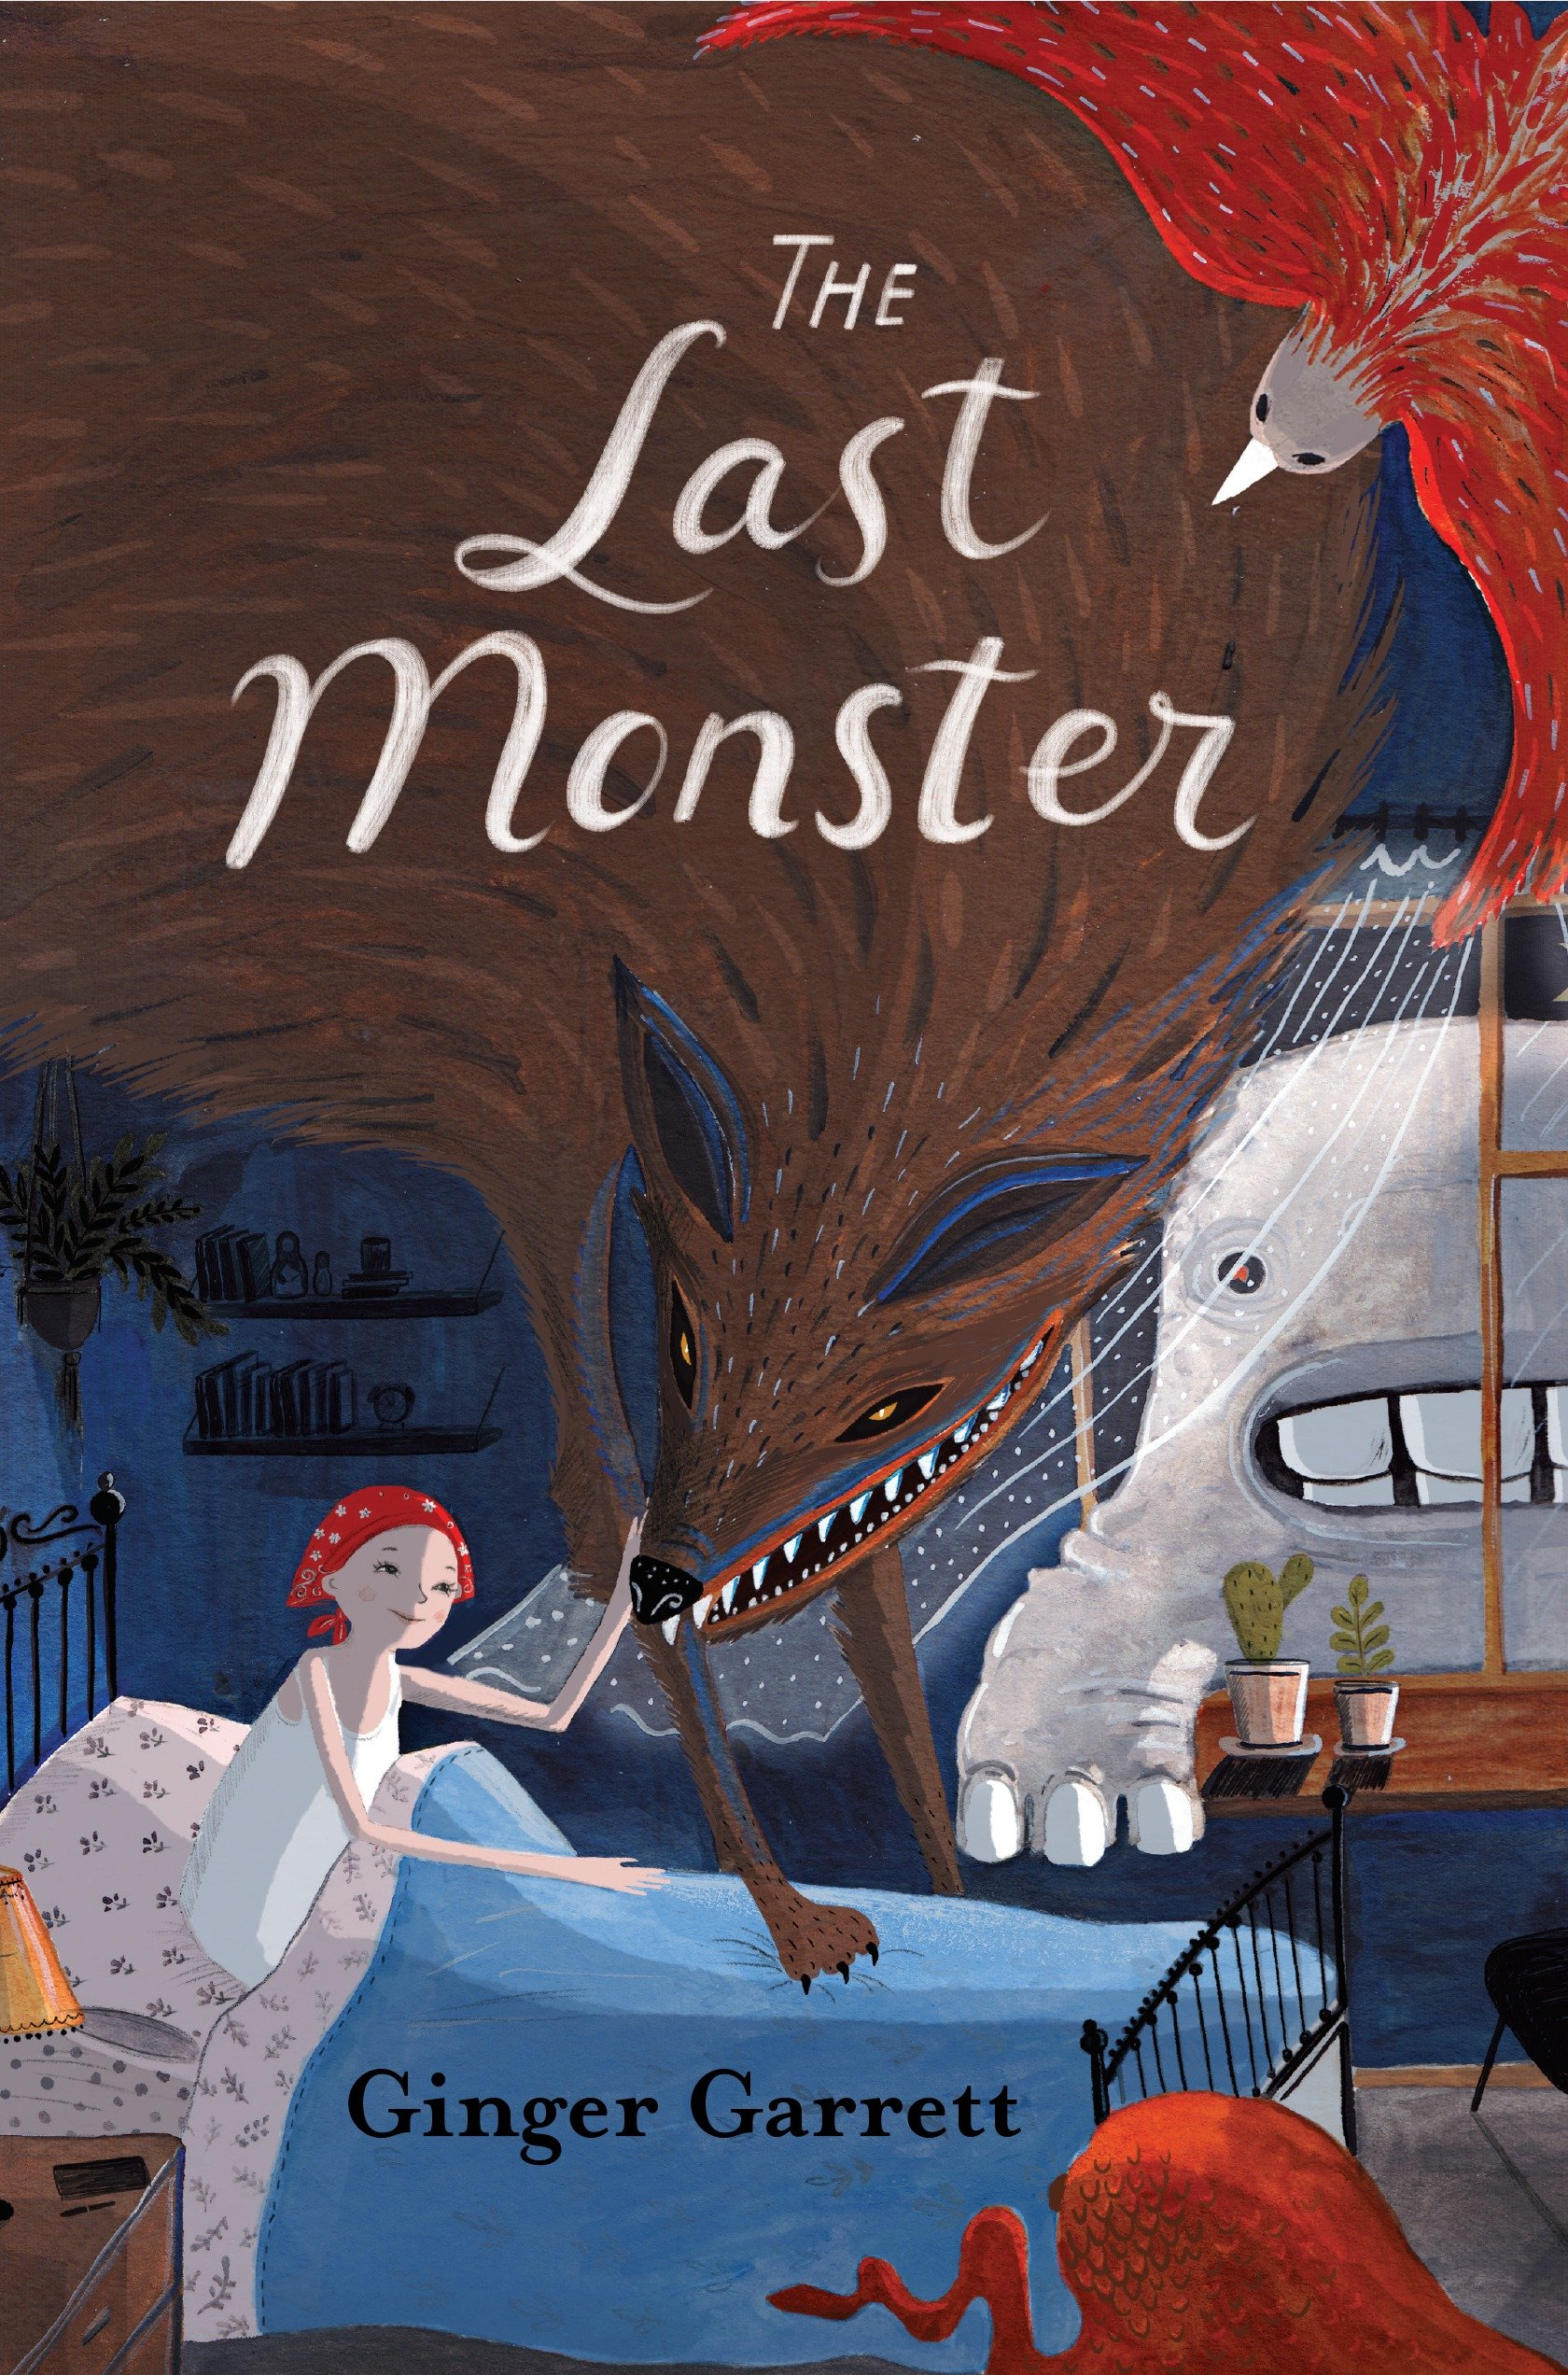 The last monster cover image